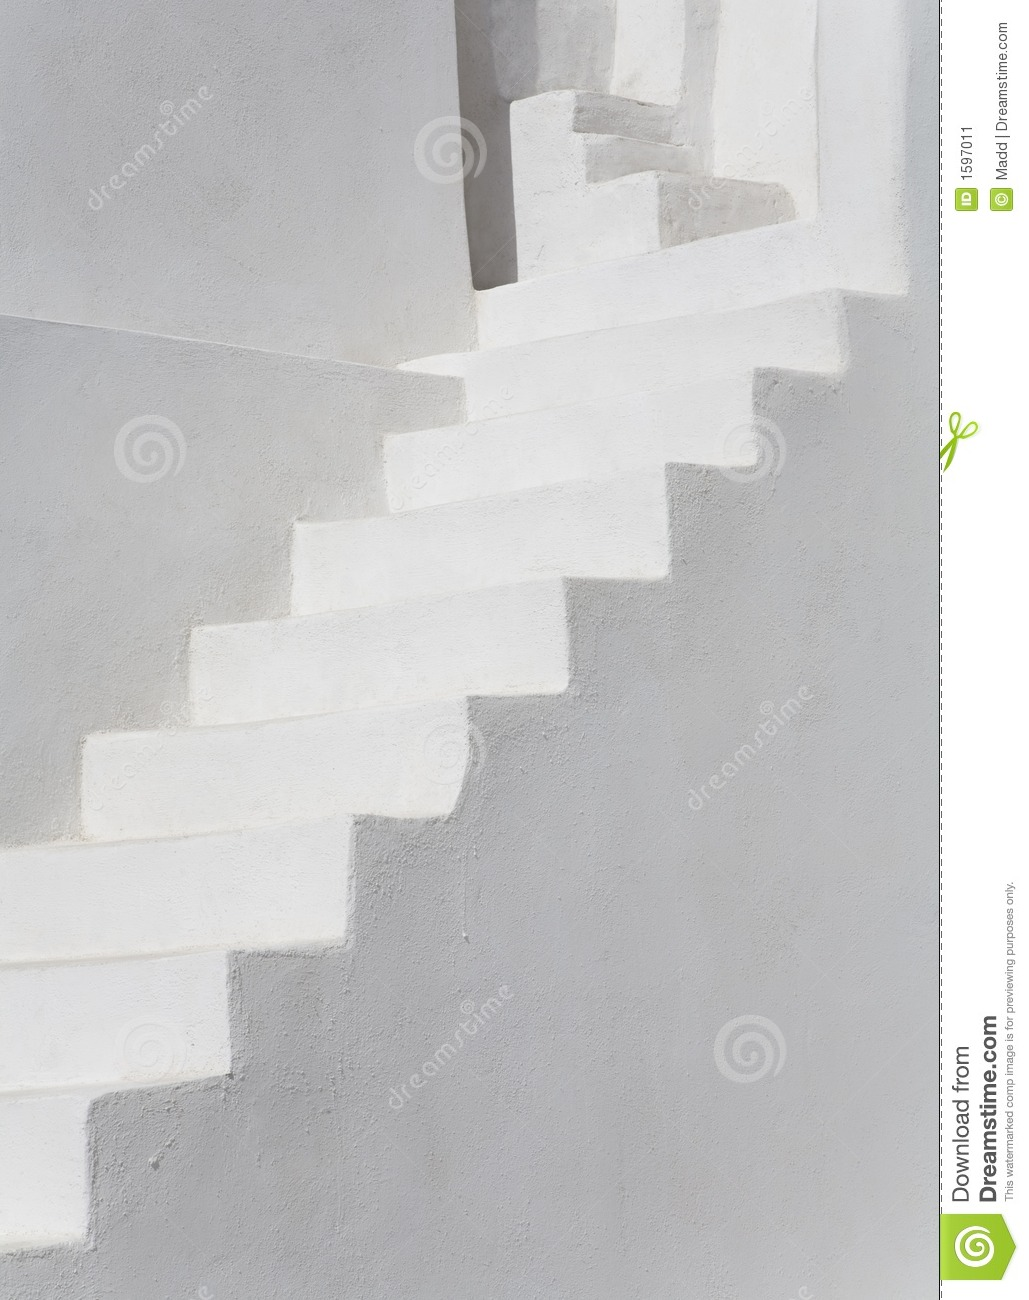 How To Paint Raw Wood Stairs